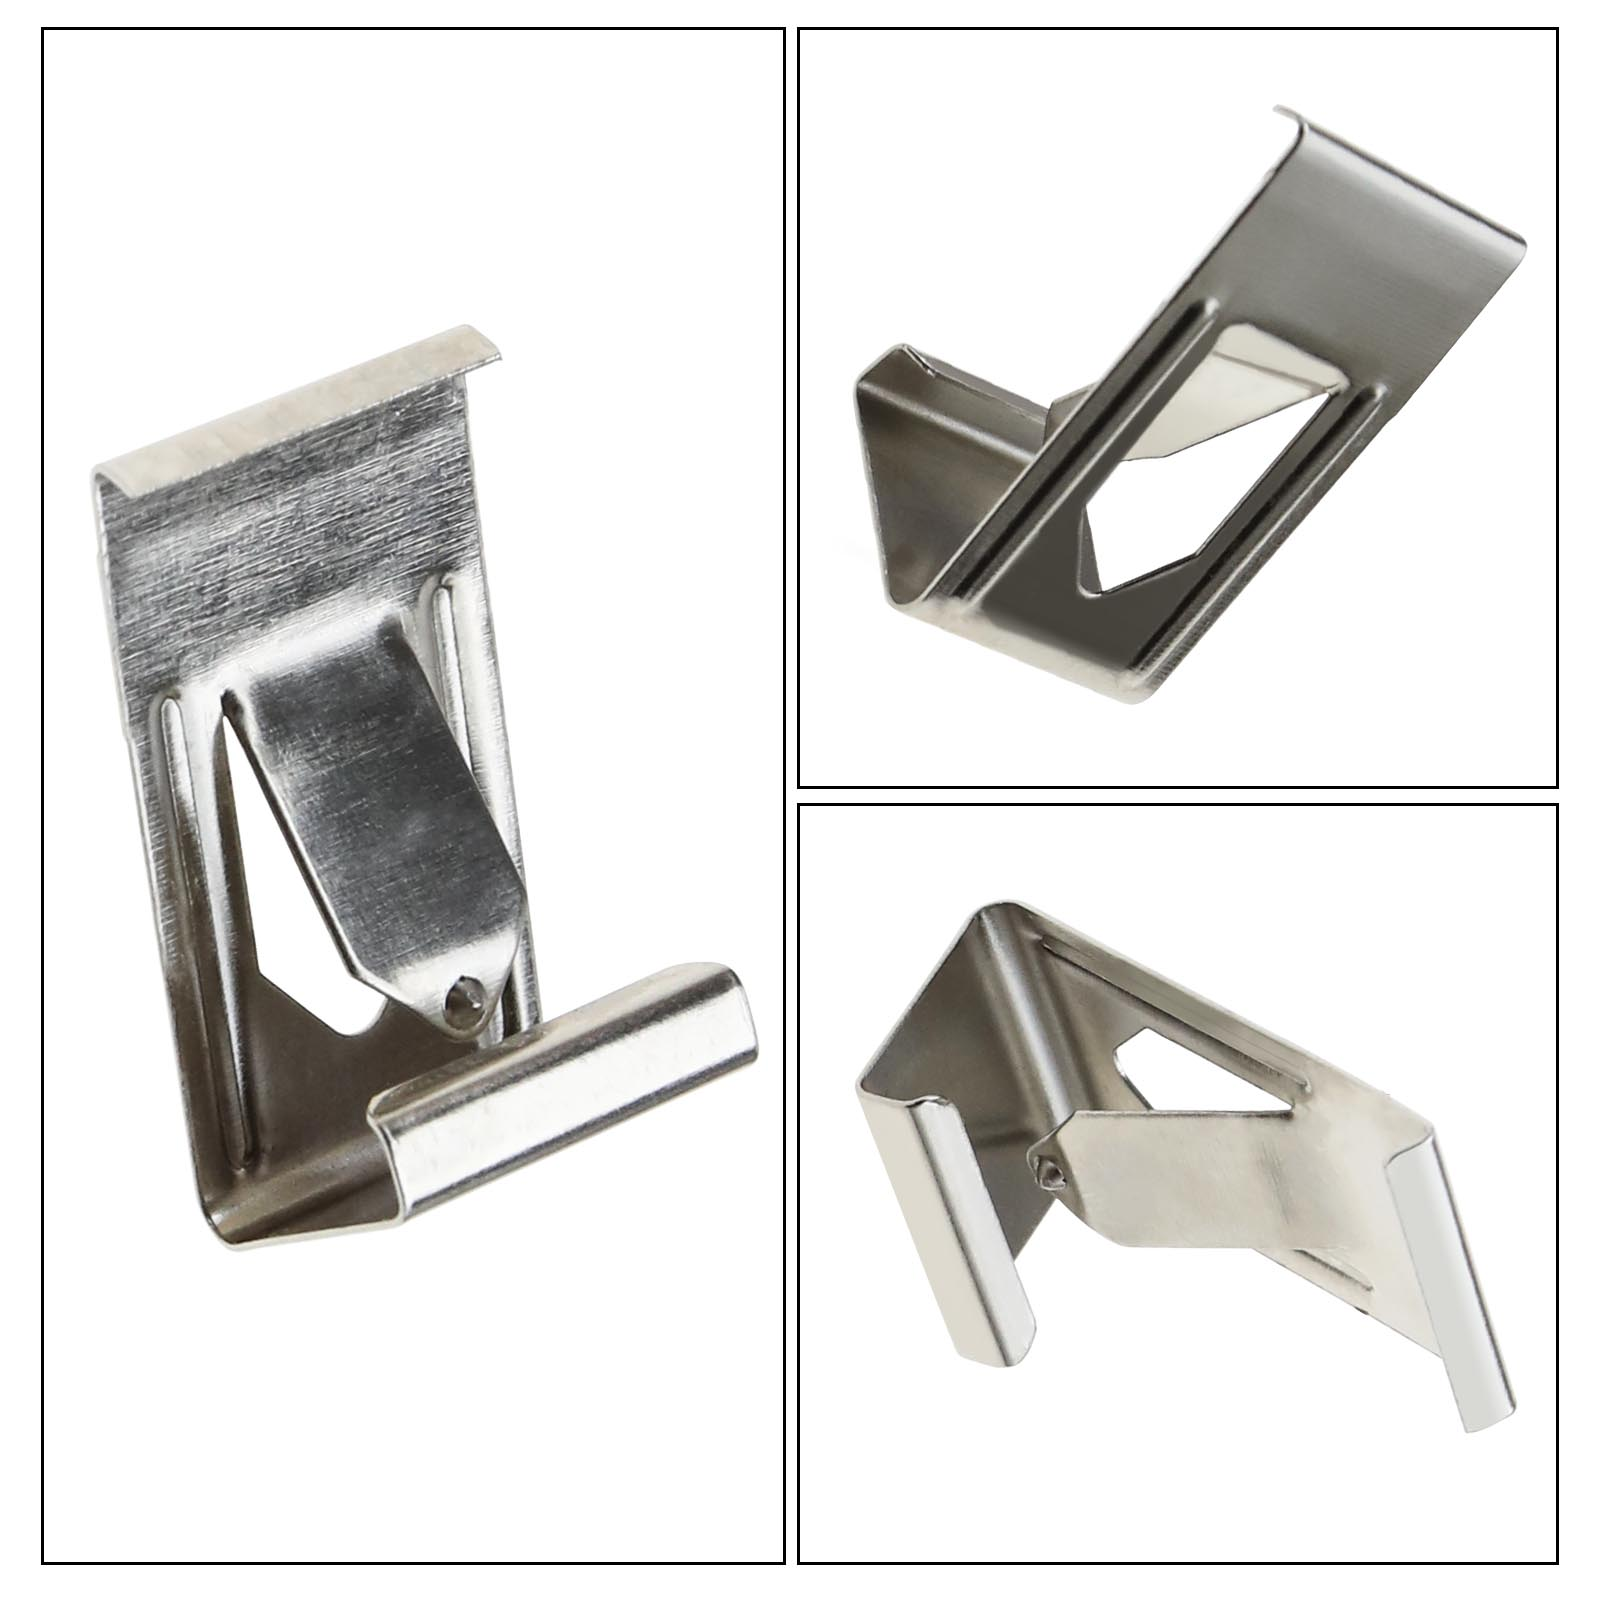 50x/100x Silver Metal Spring Turn Clip Hanger For Frame 3D Printer Heated Bed